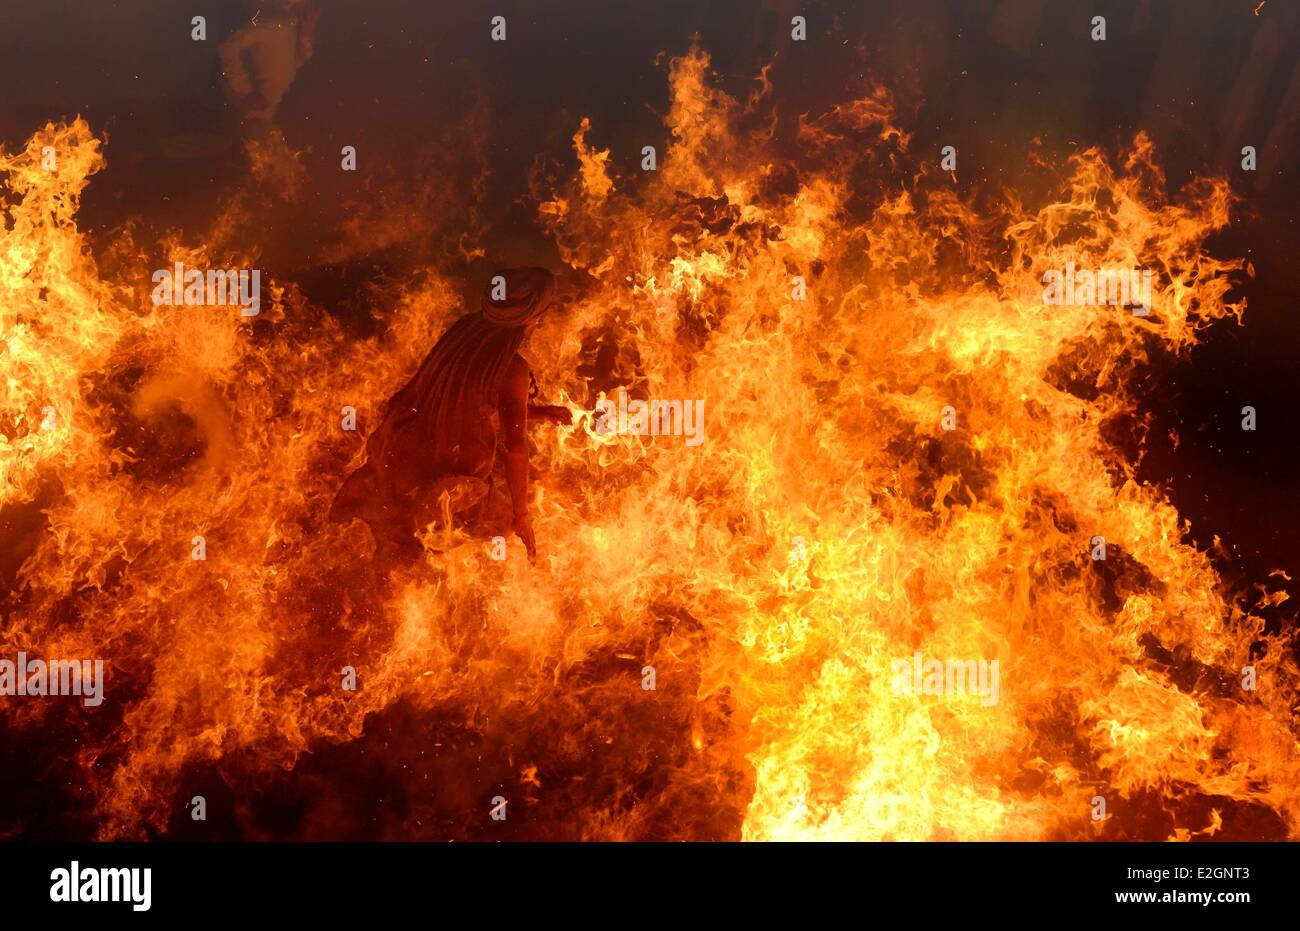 India Uttar Pradesh State a wise man crosses barefoot a huge fire which he comes out unhurt - Stock Image